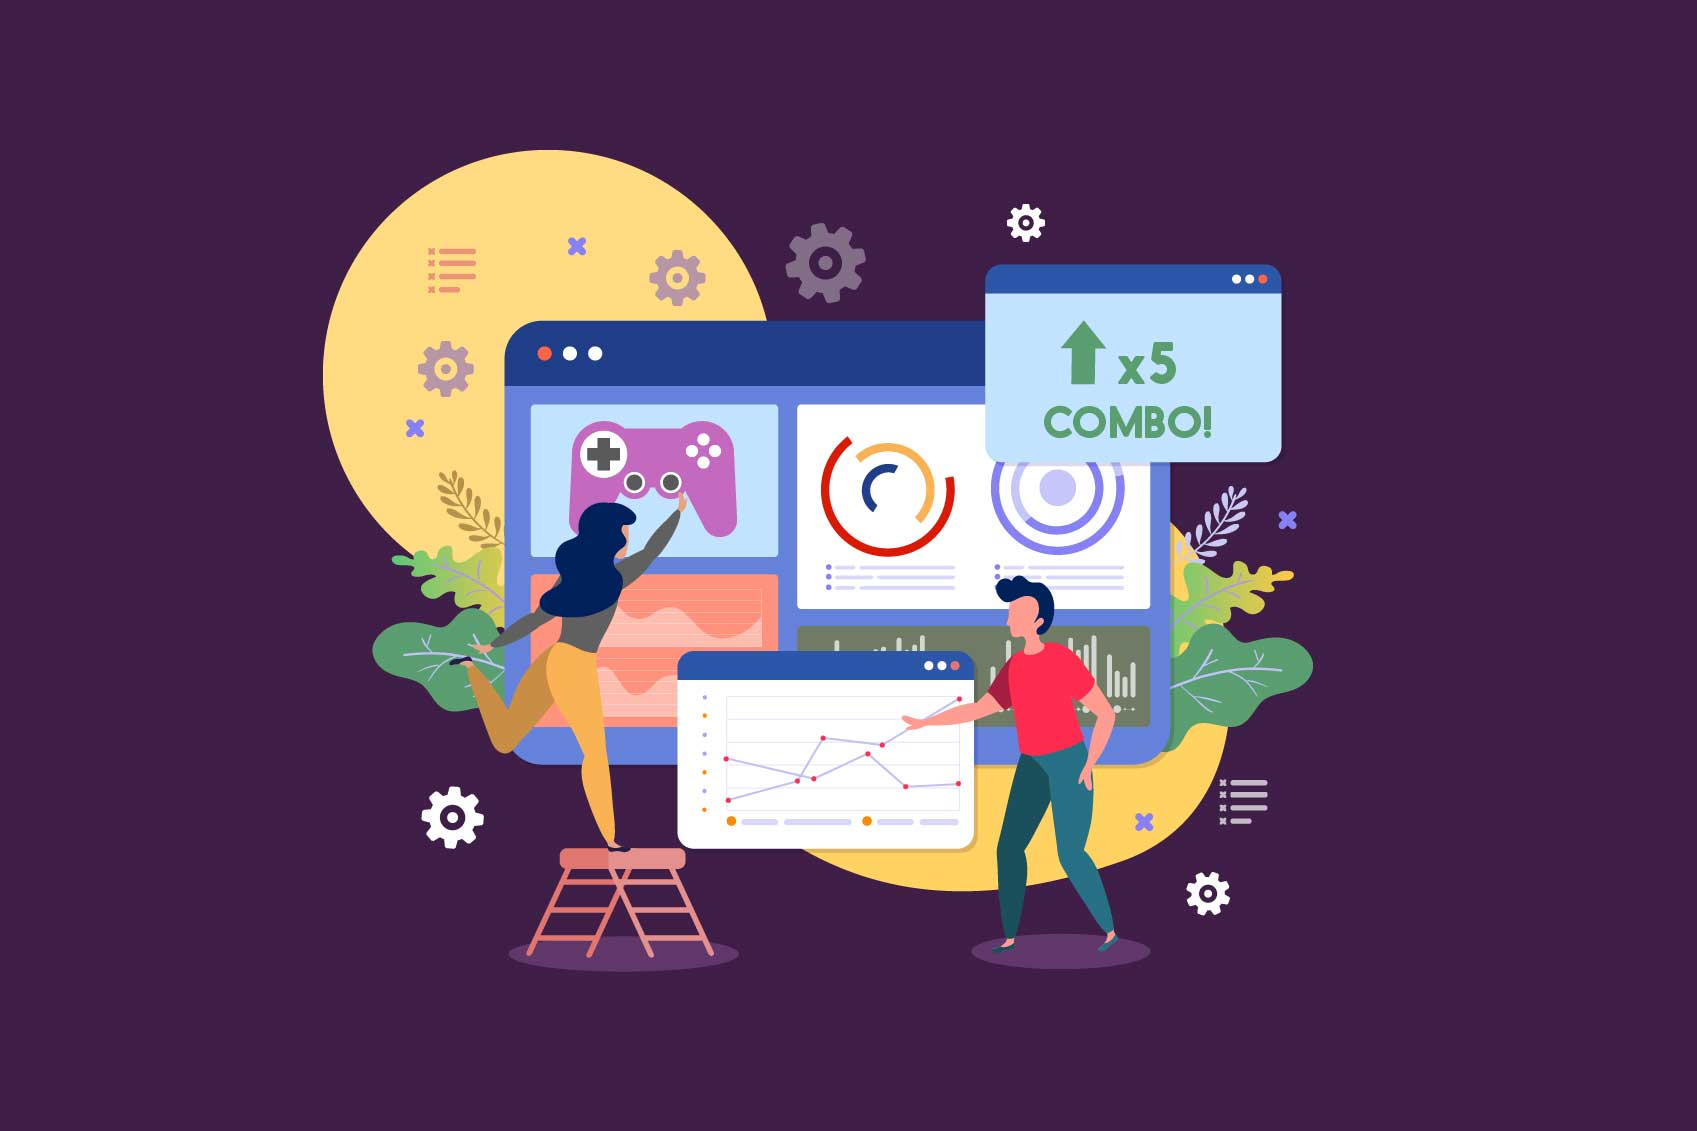 Growth Hacking & Gamification: The Best 'Combo' for Digital Presence